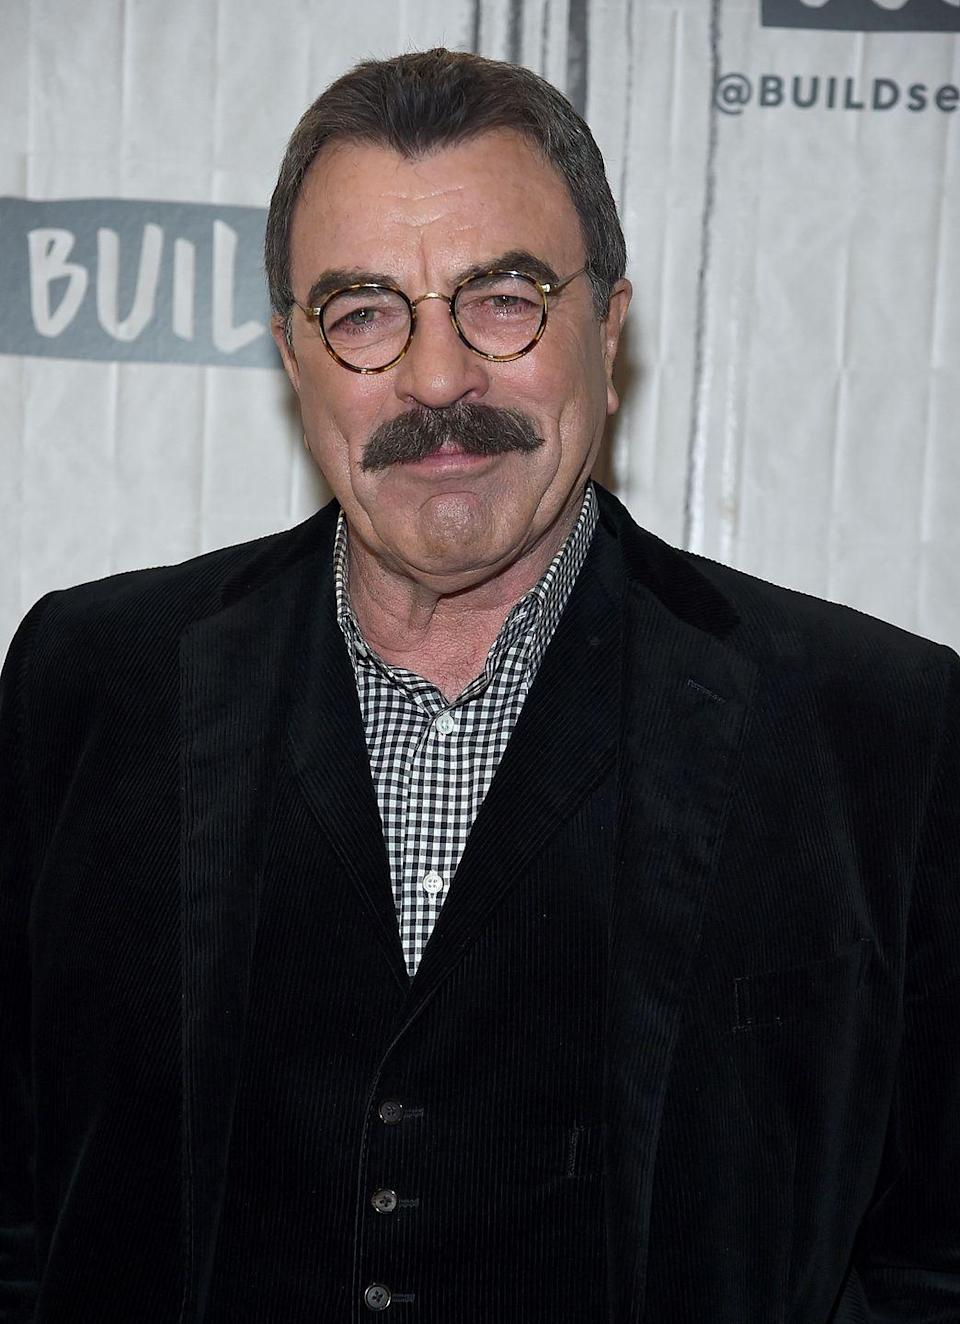 """<p>Tom Selleck earned a spot as a <a href=""""https://www.sports-reference.com/cbb/players/tom-selleck-1.html"""" rel=""""nofollow noopener"""" target=""""_blank"""" data-ylk=""""slk:Trojan on the basketball team"""" class=""""link rapid-noclick-resp"""">Trojan on the basketball team</a> at the University of Southern California. He played on the team from 1965 to 1966, but dropped out of school for his acting career. </p>"""